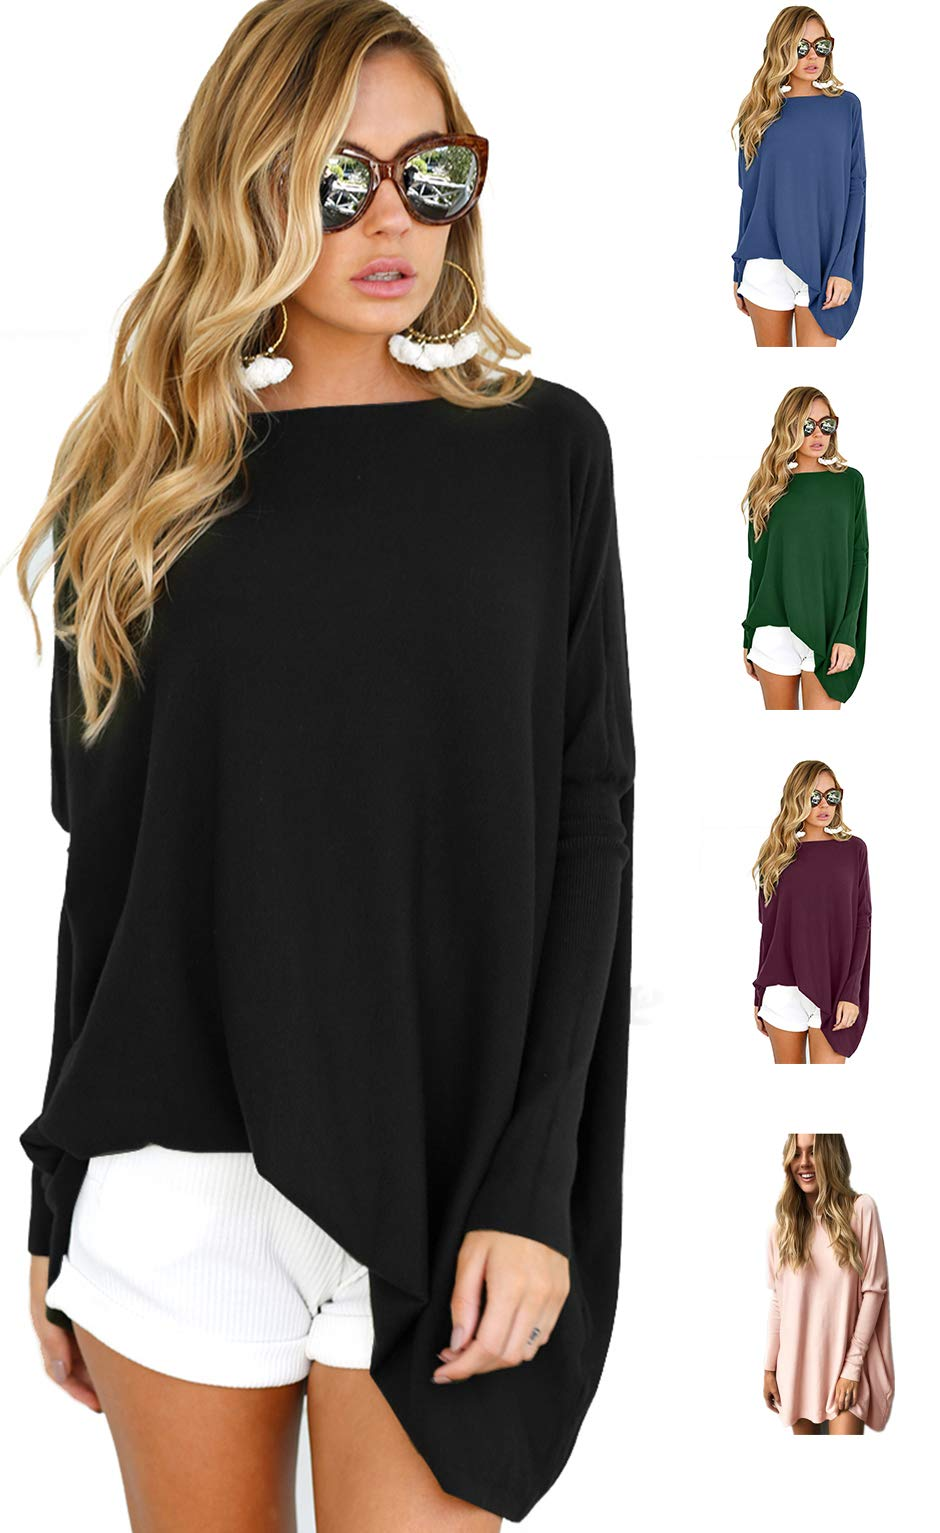 LIYOHON Women's Oversized T-Shirt Round Neck Long Sleeve Loose Casual Tunic Tops For Women Black-L